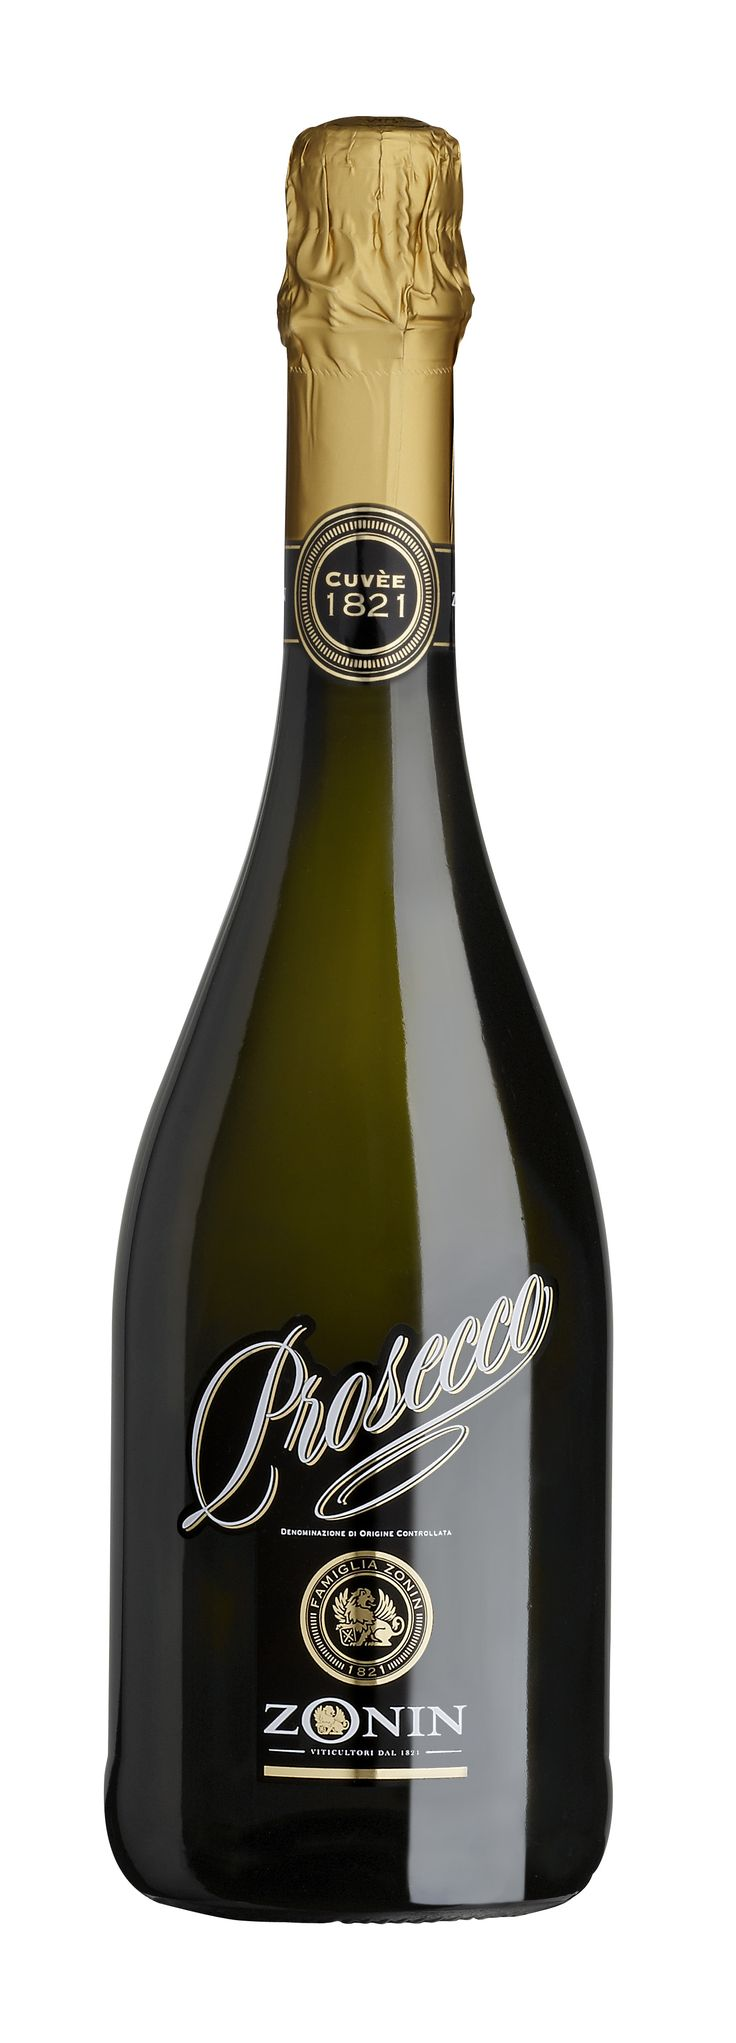 Zonin Prosecco Doc cuvee 1821 750ml